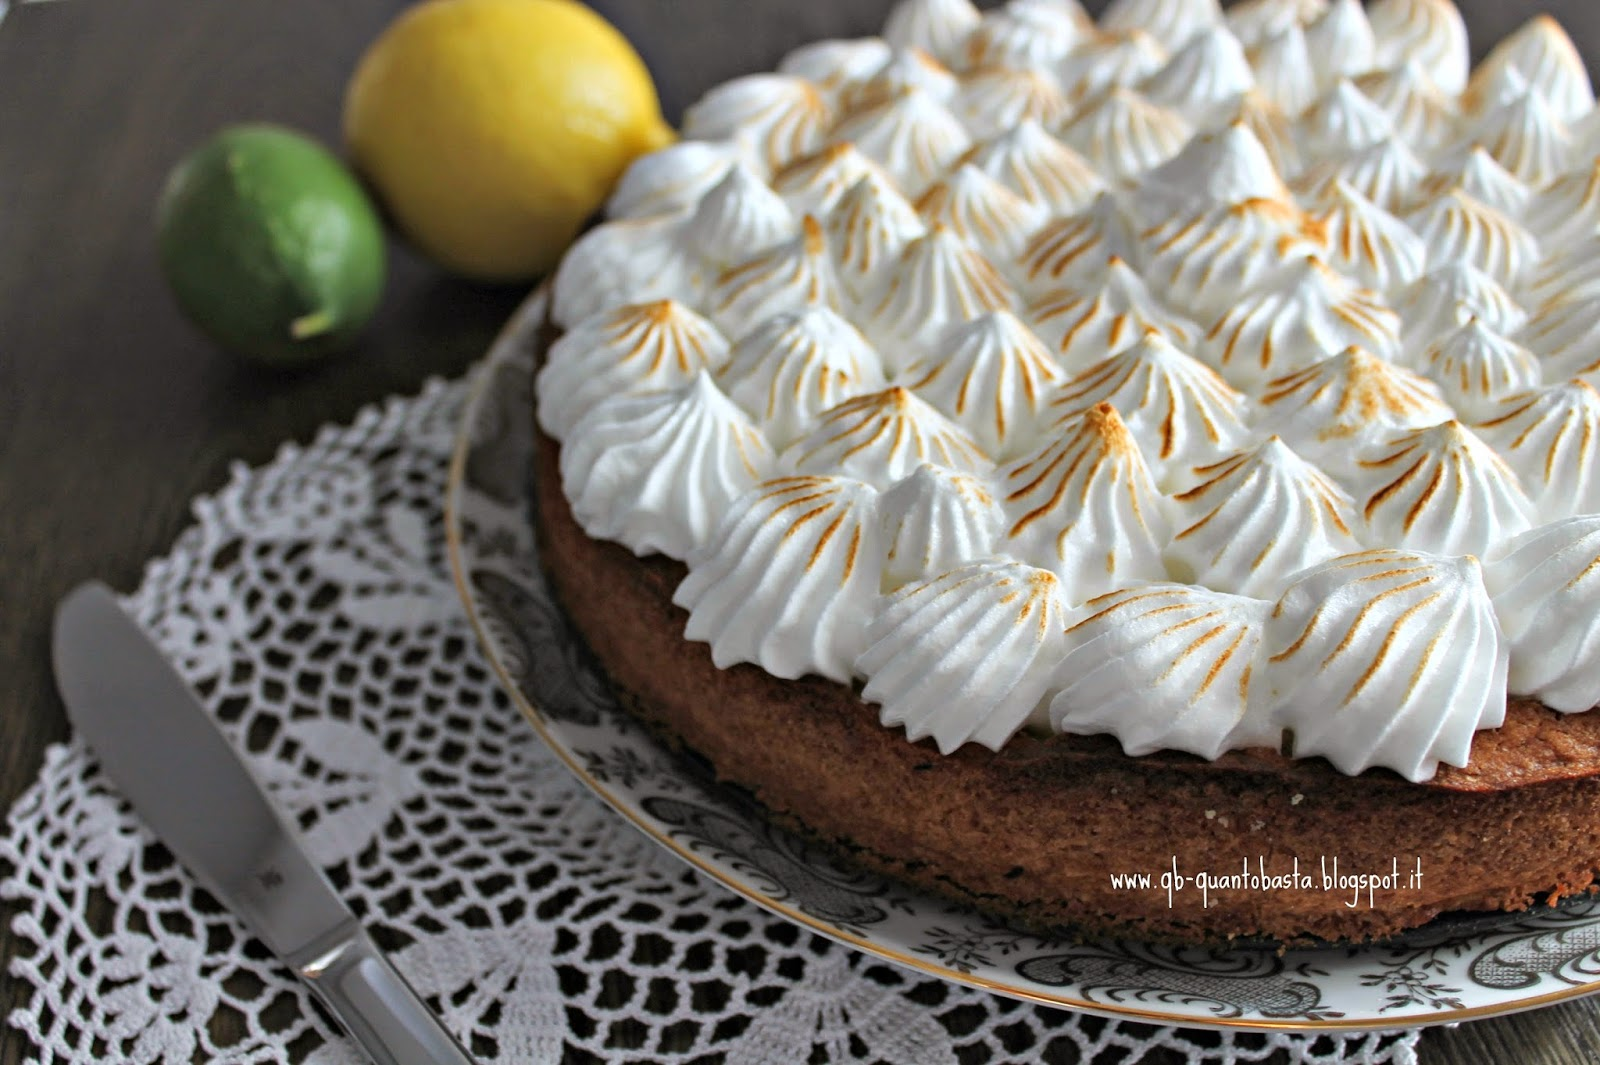 Q.b. - Quanto Basta.: Lemon Meringue Pie